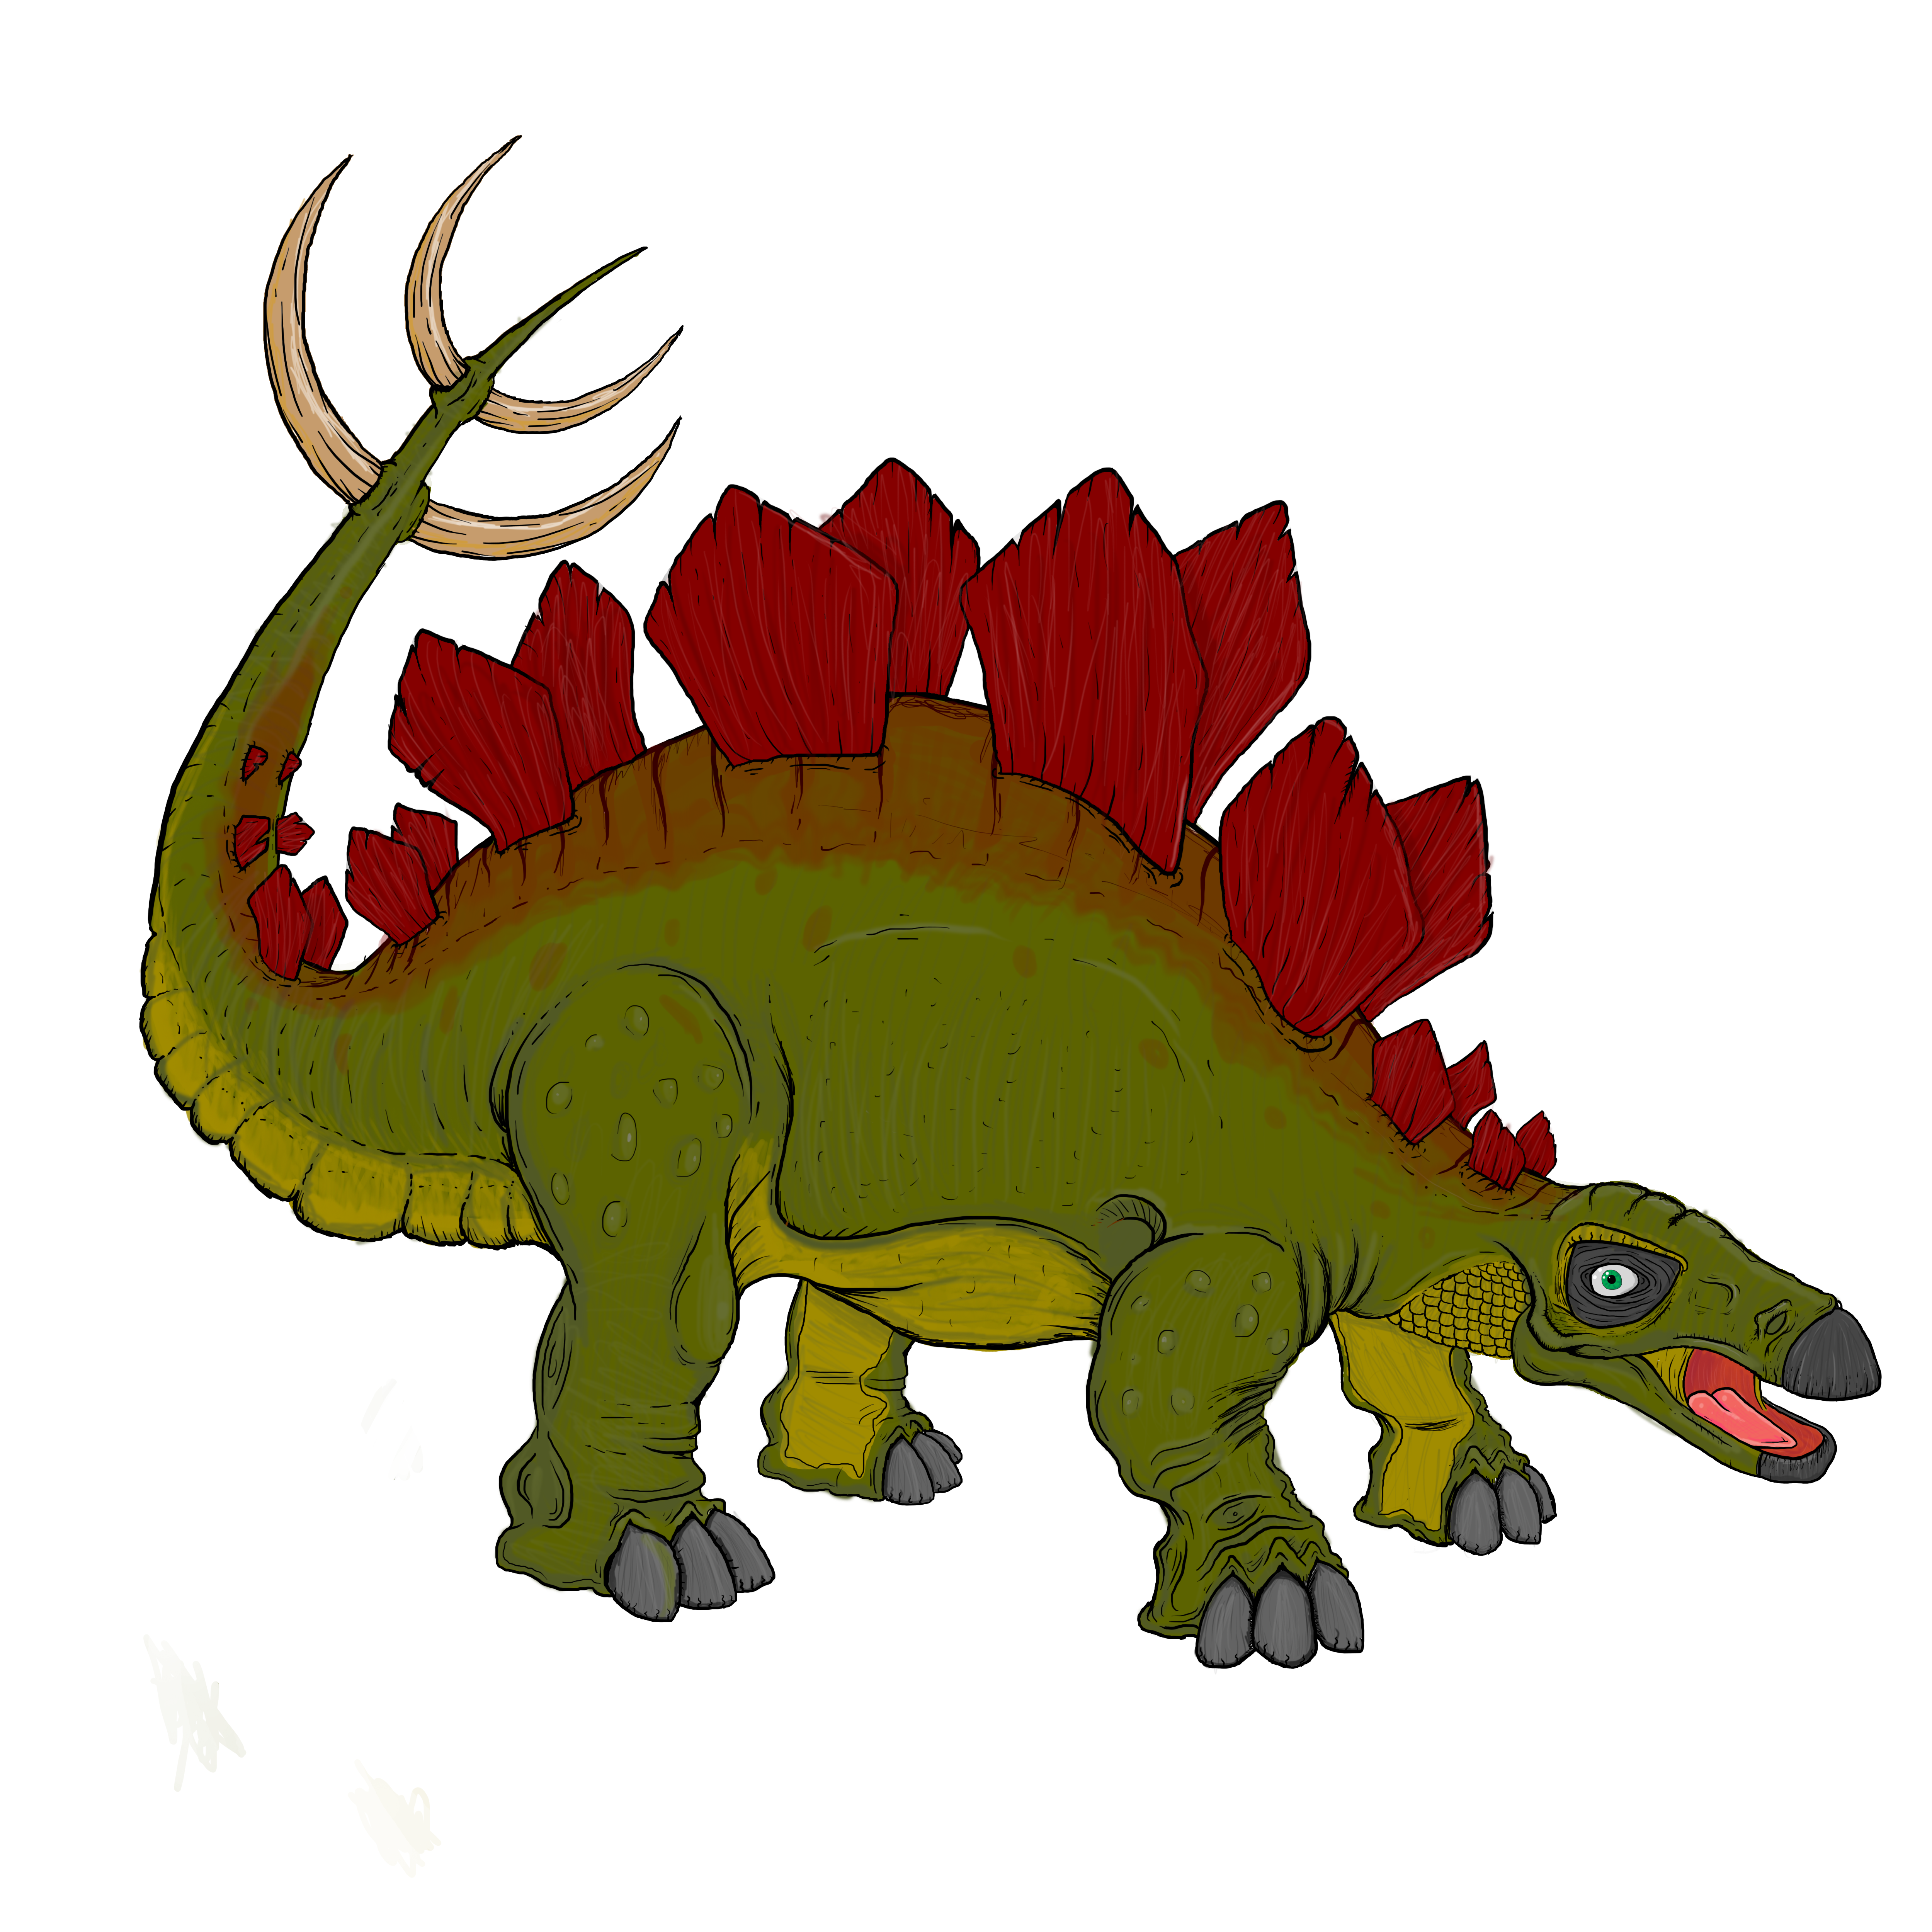 Greg The Stegosaurus